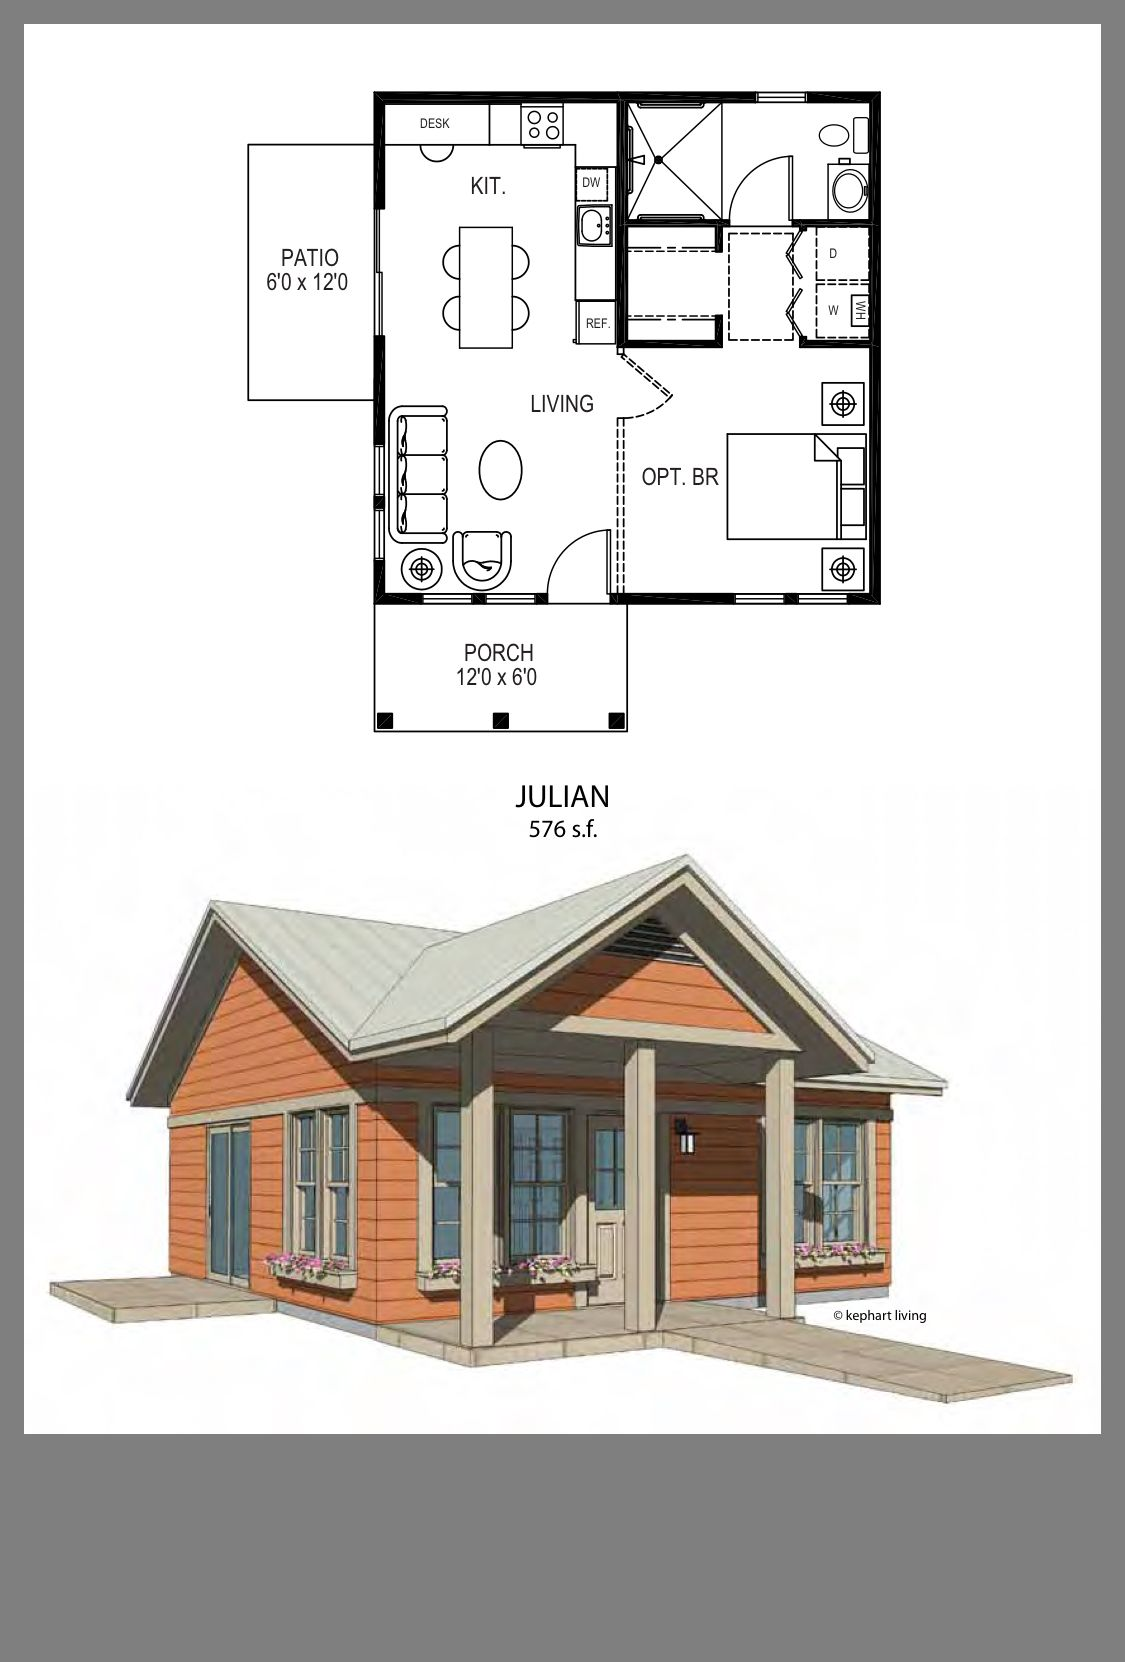 Pin By Michelle Young On Tiny House Tiny House Floor Plans Small Tiny House Best Tiny House